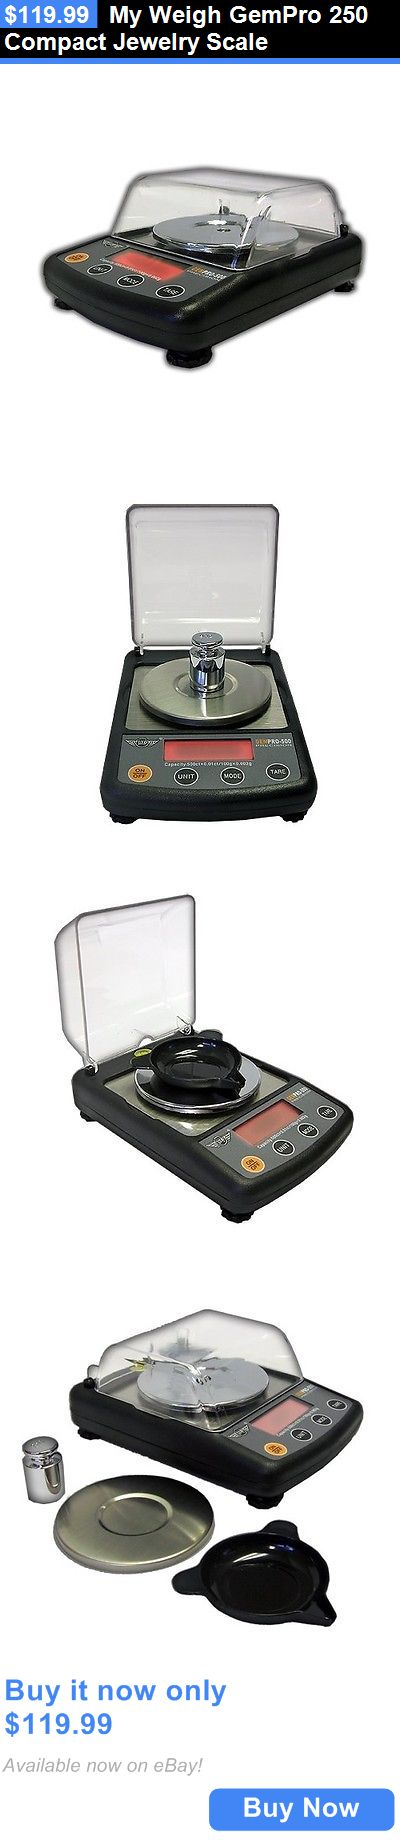 Pocket Digital Scales: My Weigh Gempro 250 Compact Jewelry Scale BUY IT NOW ONLY: $119.99